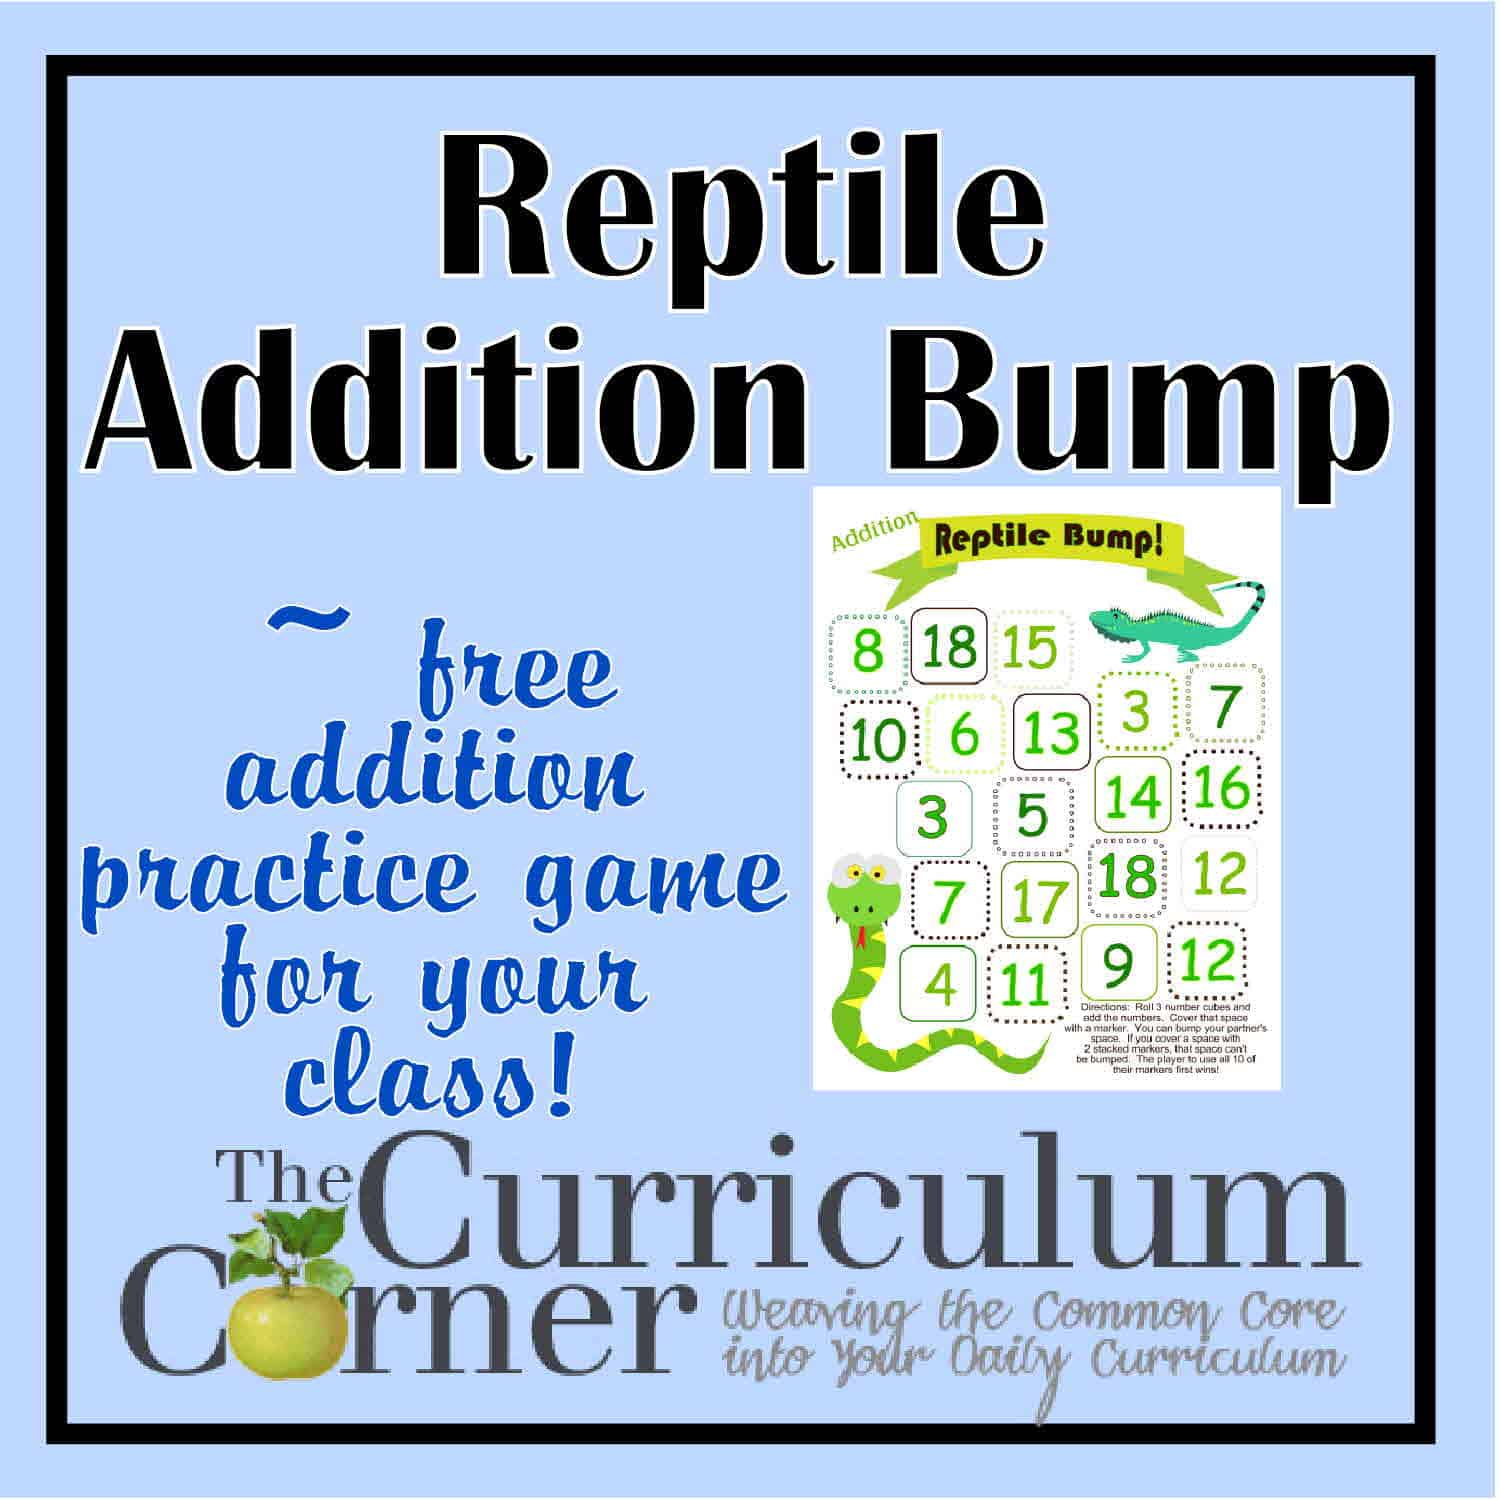 Reptile Addition Bump